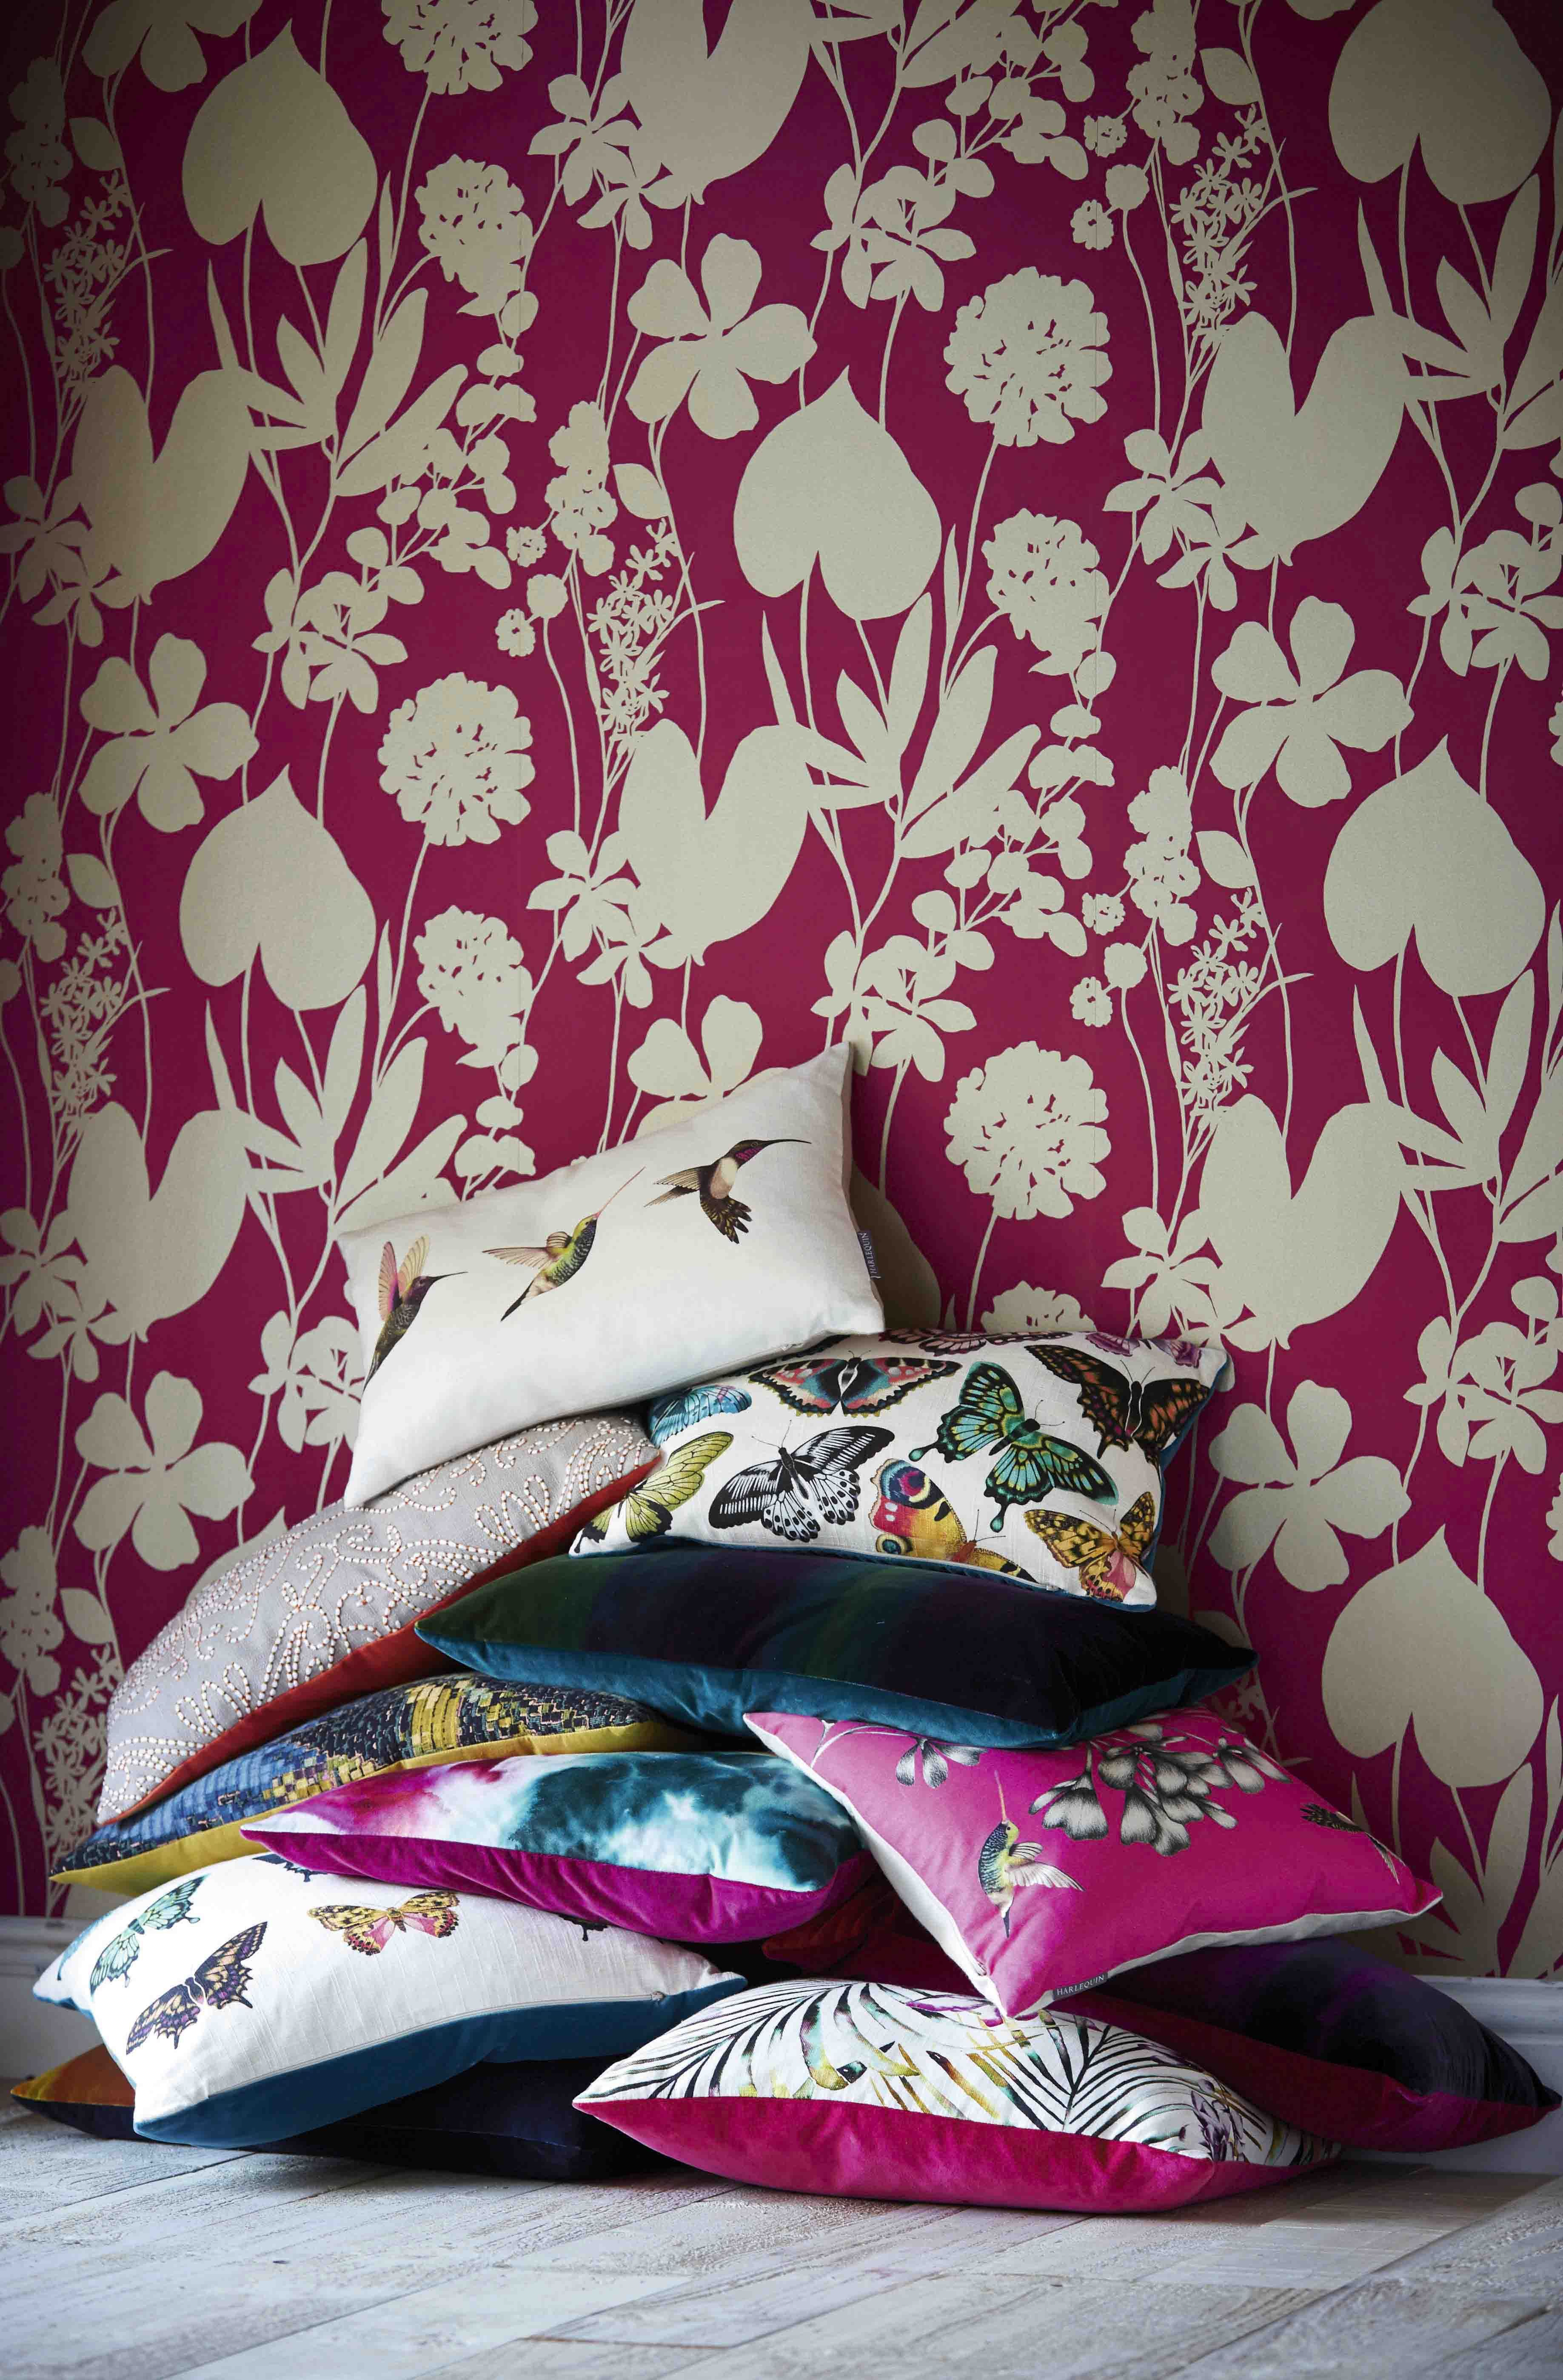 Harlequin's collection of tropically inspired Amazilia